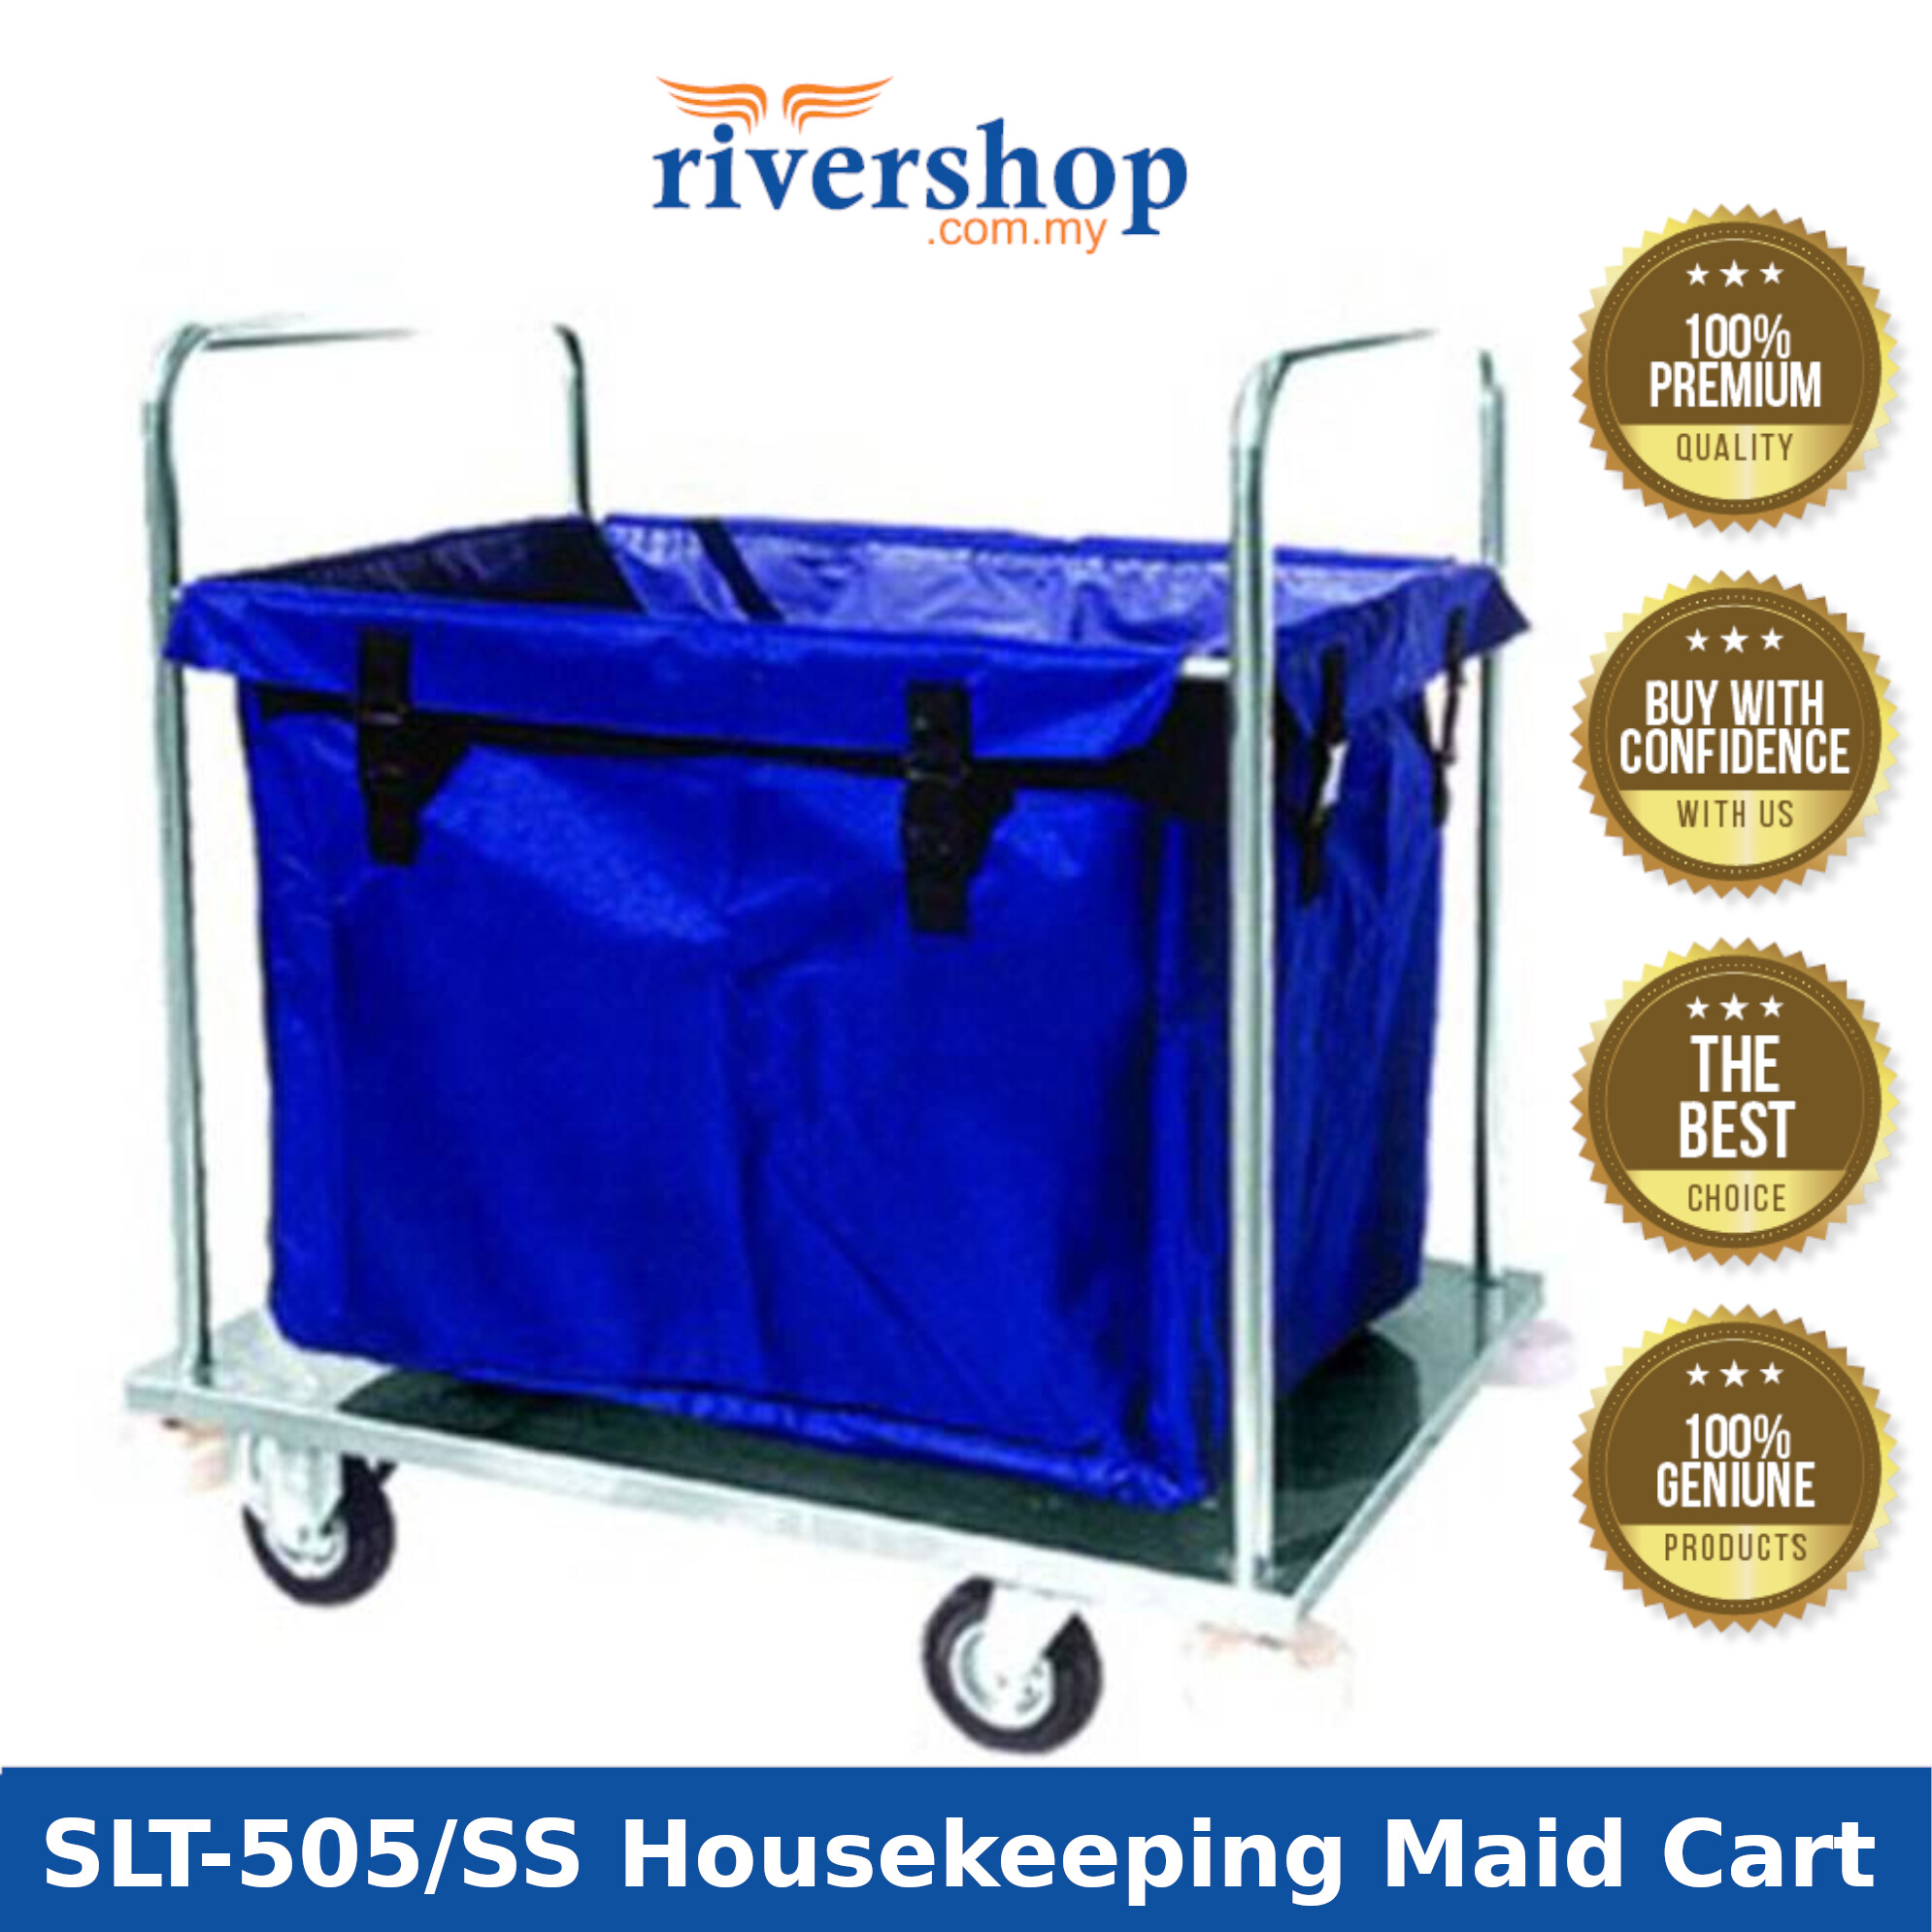 Multi-Purpose Stainless Steel Soiled Linen Cart Trolley SLT-505/SS / Hotel Housekeeping Trolley Maid Cart